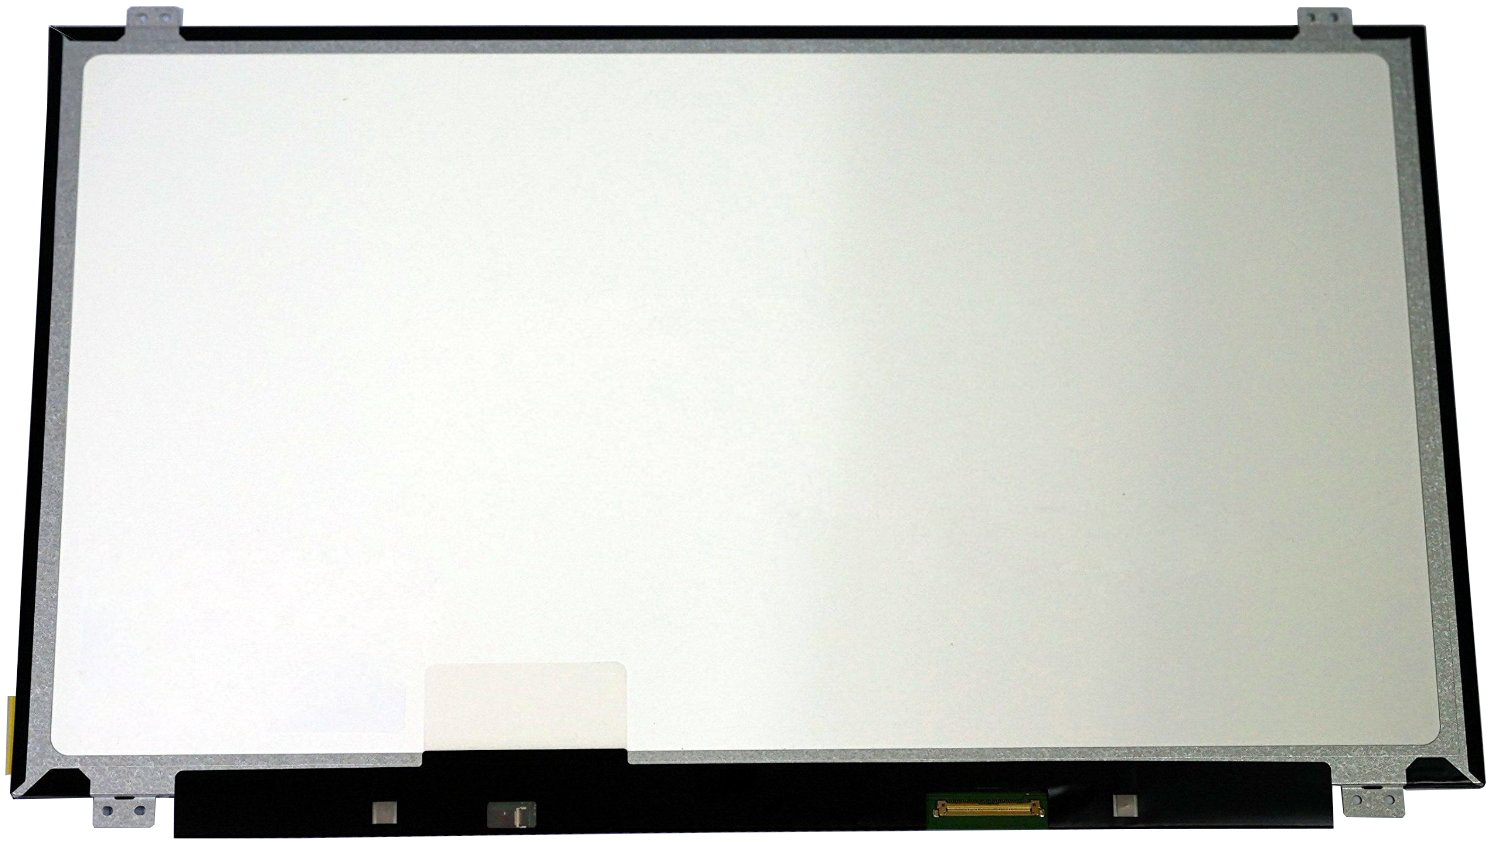 QuYing Laptop LCD Screen for Acer Aspire V5-551G V5-551 V5-531G V5-531 V5-571 V5-571G ZR7 PEW71 (15.6 inch 1366x768 40pin N) new for acer aspire v5 531 v5 571 v5 571g lcd lvds cable va51 50 4vm06 002 free shipping